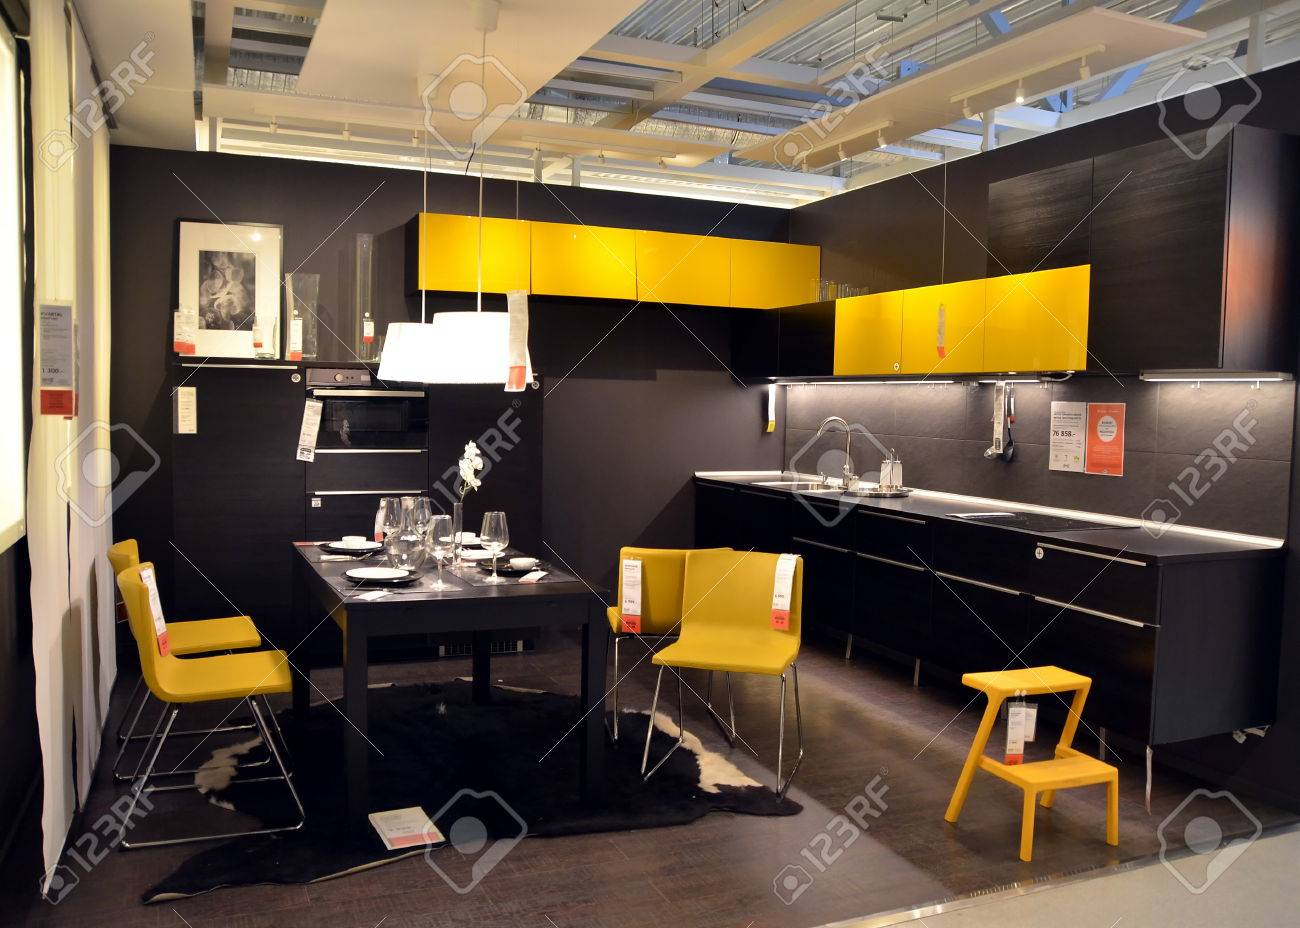 Interieur Ikea Kitchen Interior In The Ikea Store In St Petersburg